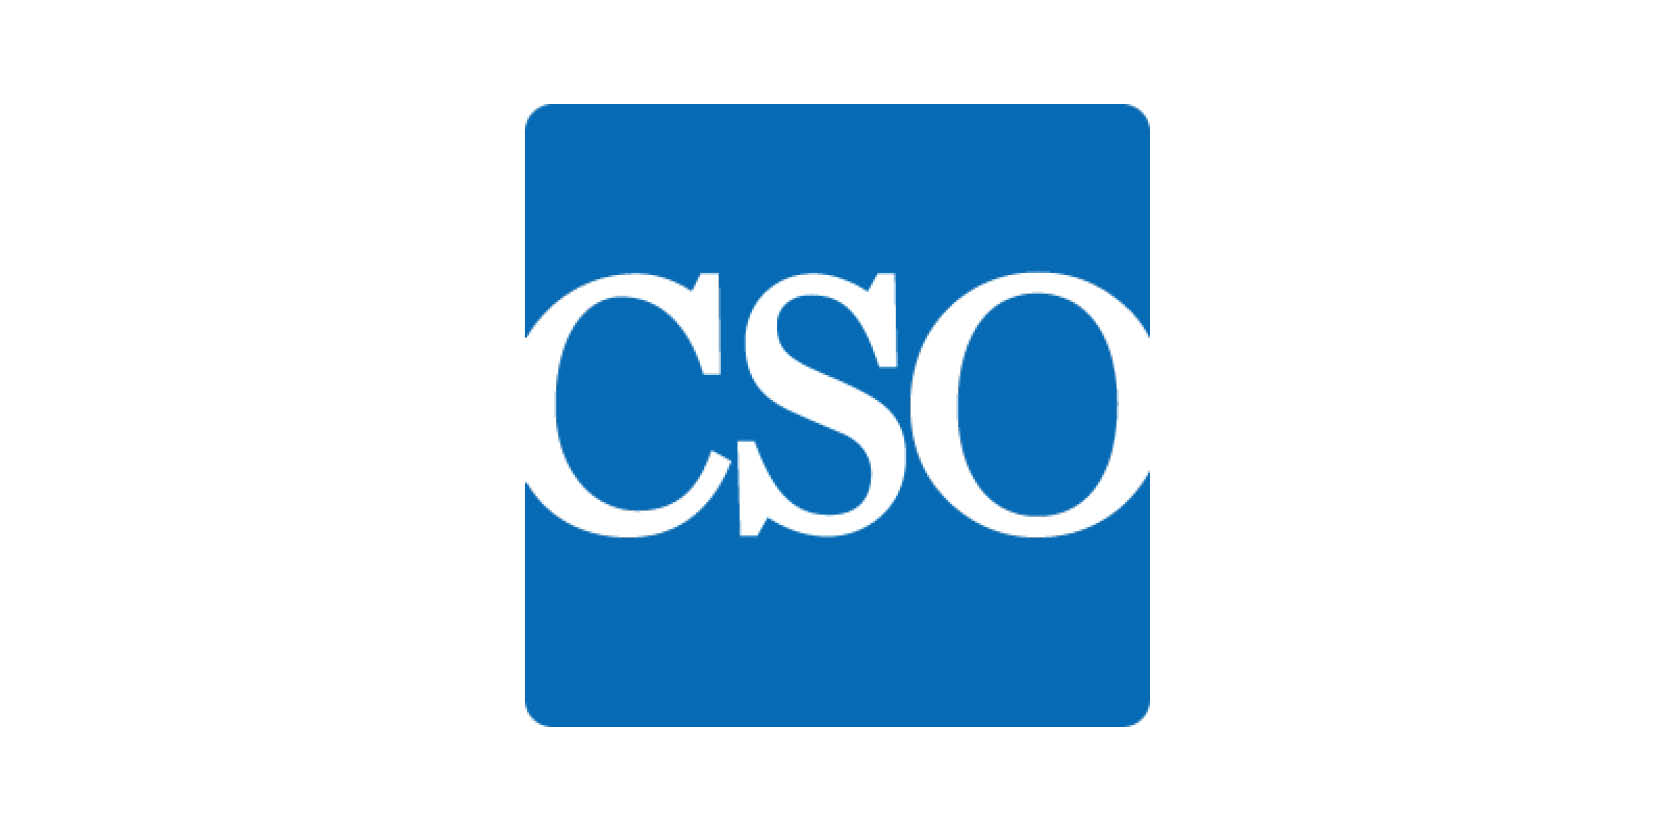 CSOOnline: Researching the threat intelligence space